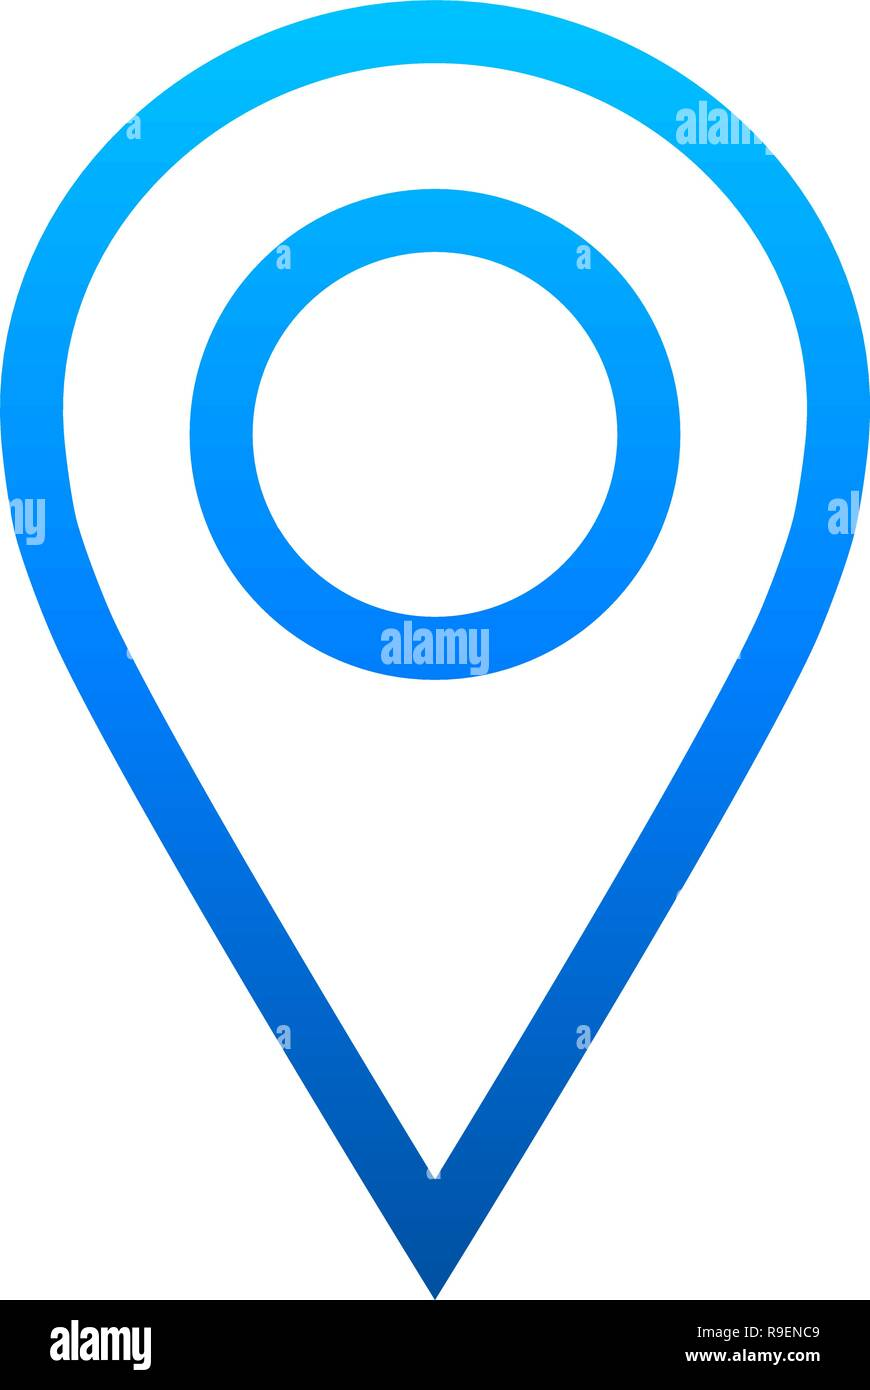 Pin point - blue gradient outlined, isolated - vector illustration - Stock Vector